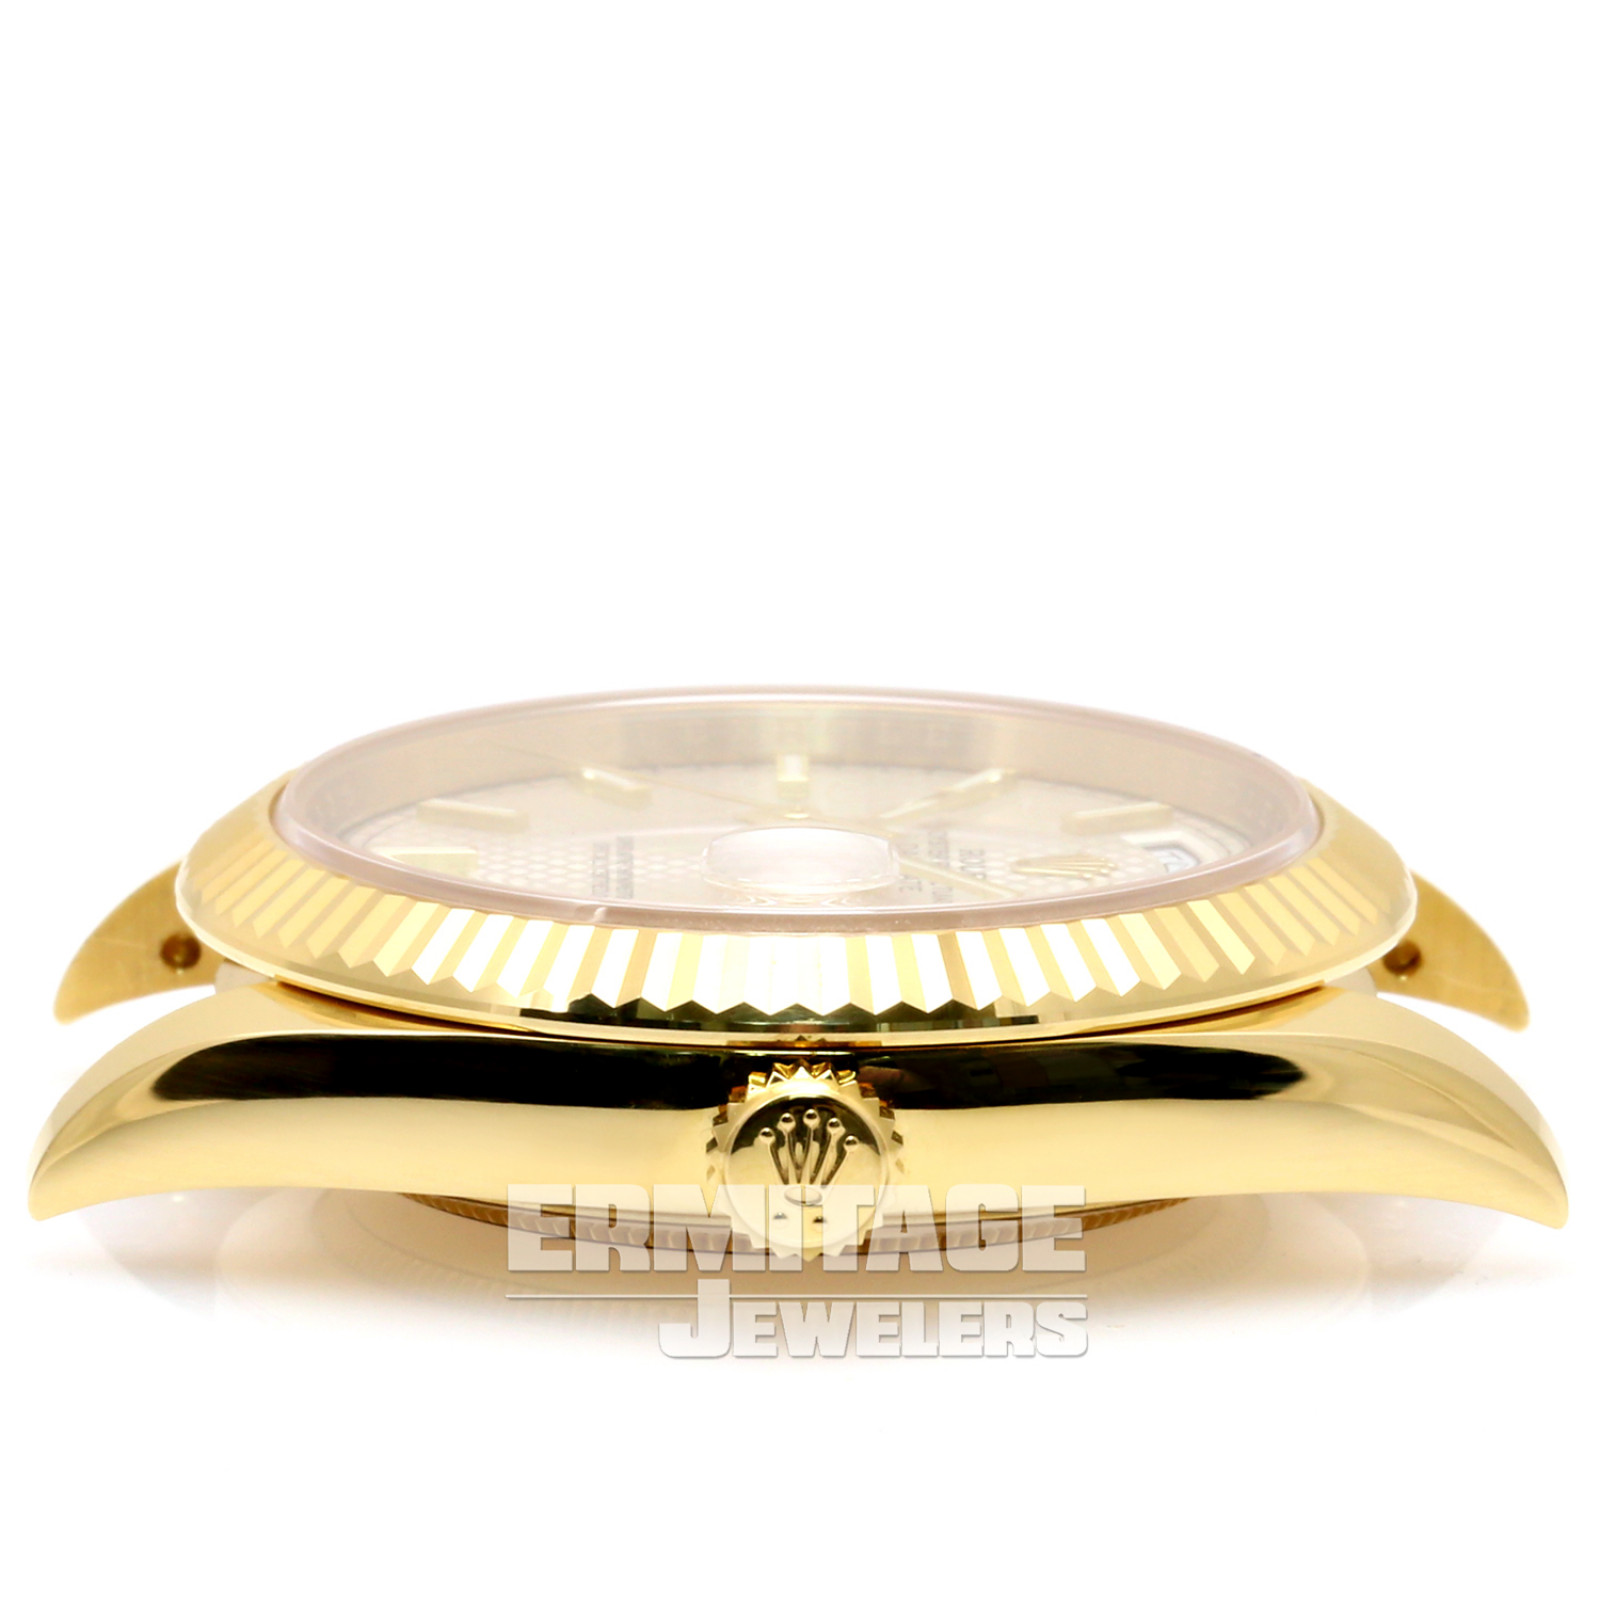 Sell Your Rolex Day-Date 228238